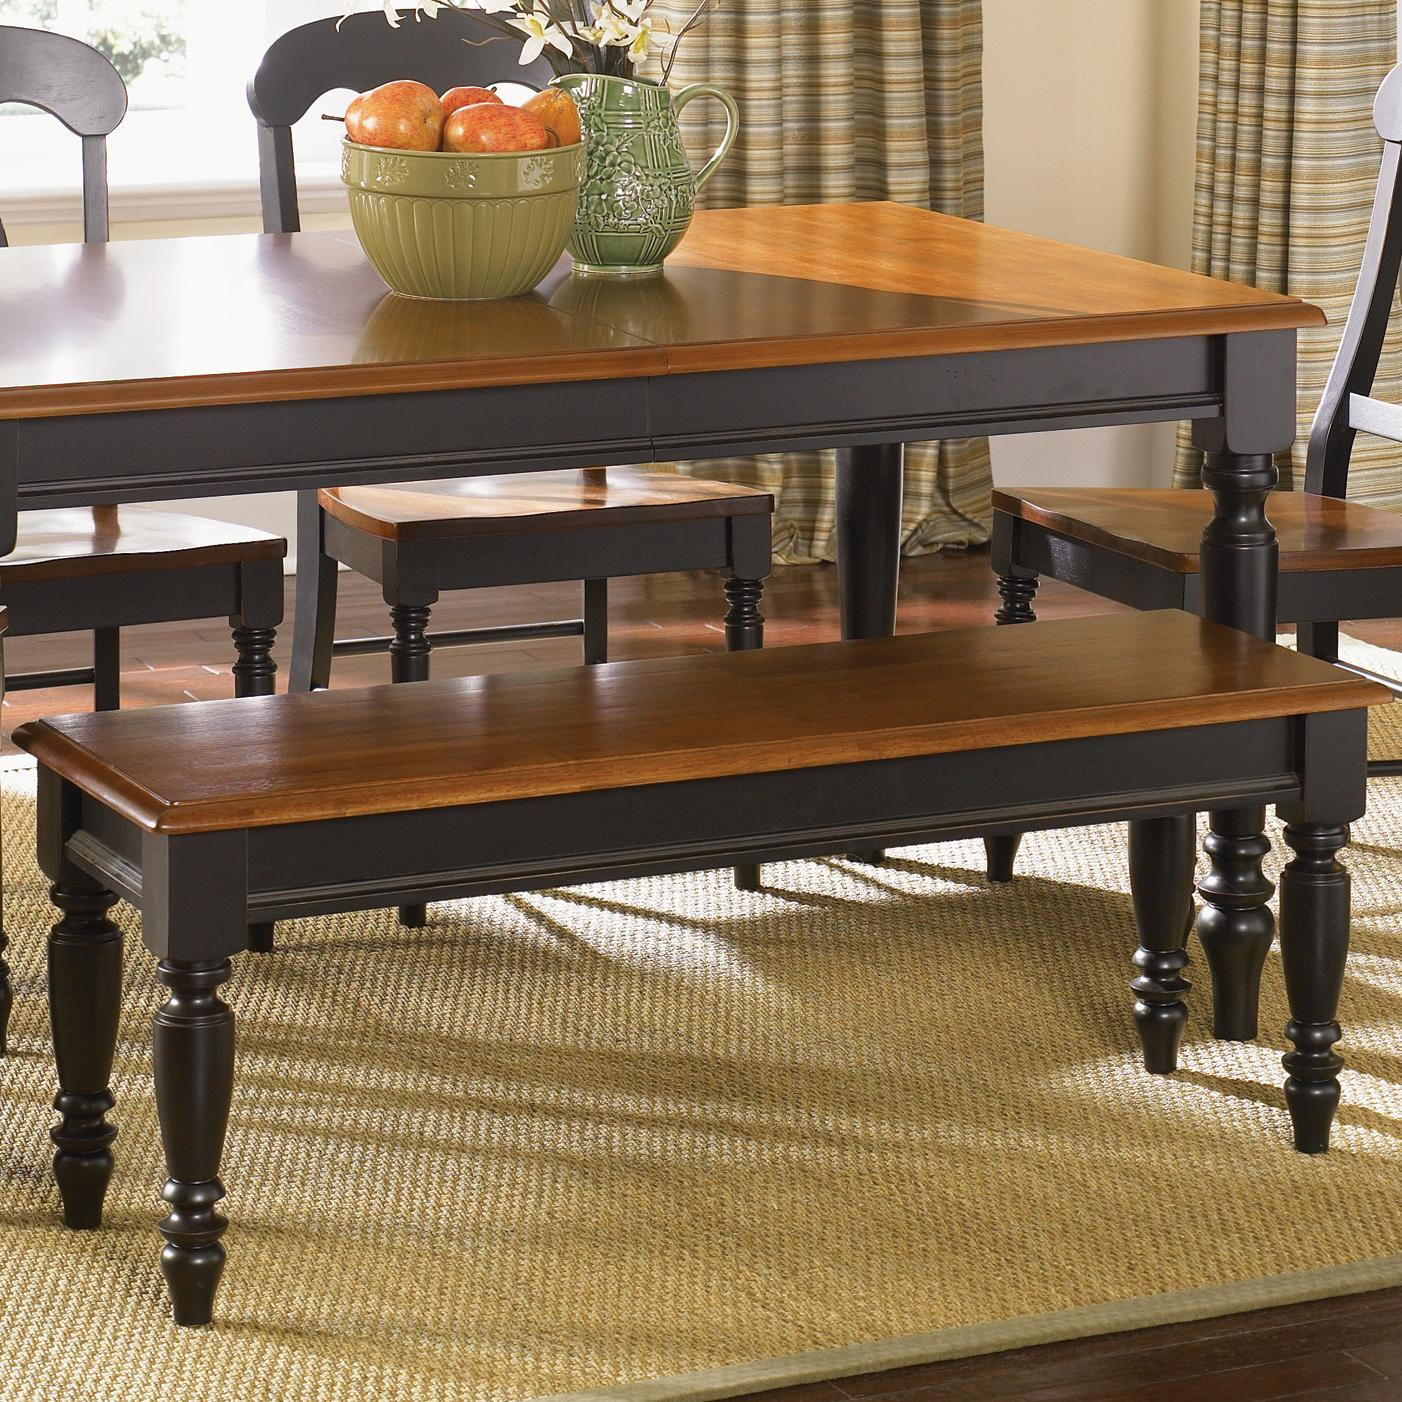 Country Dining Table With Bench: Low Country Bench With Turned Legs